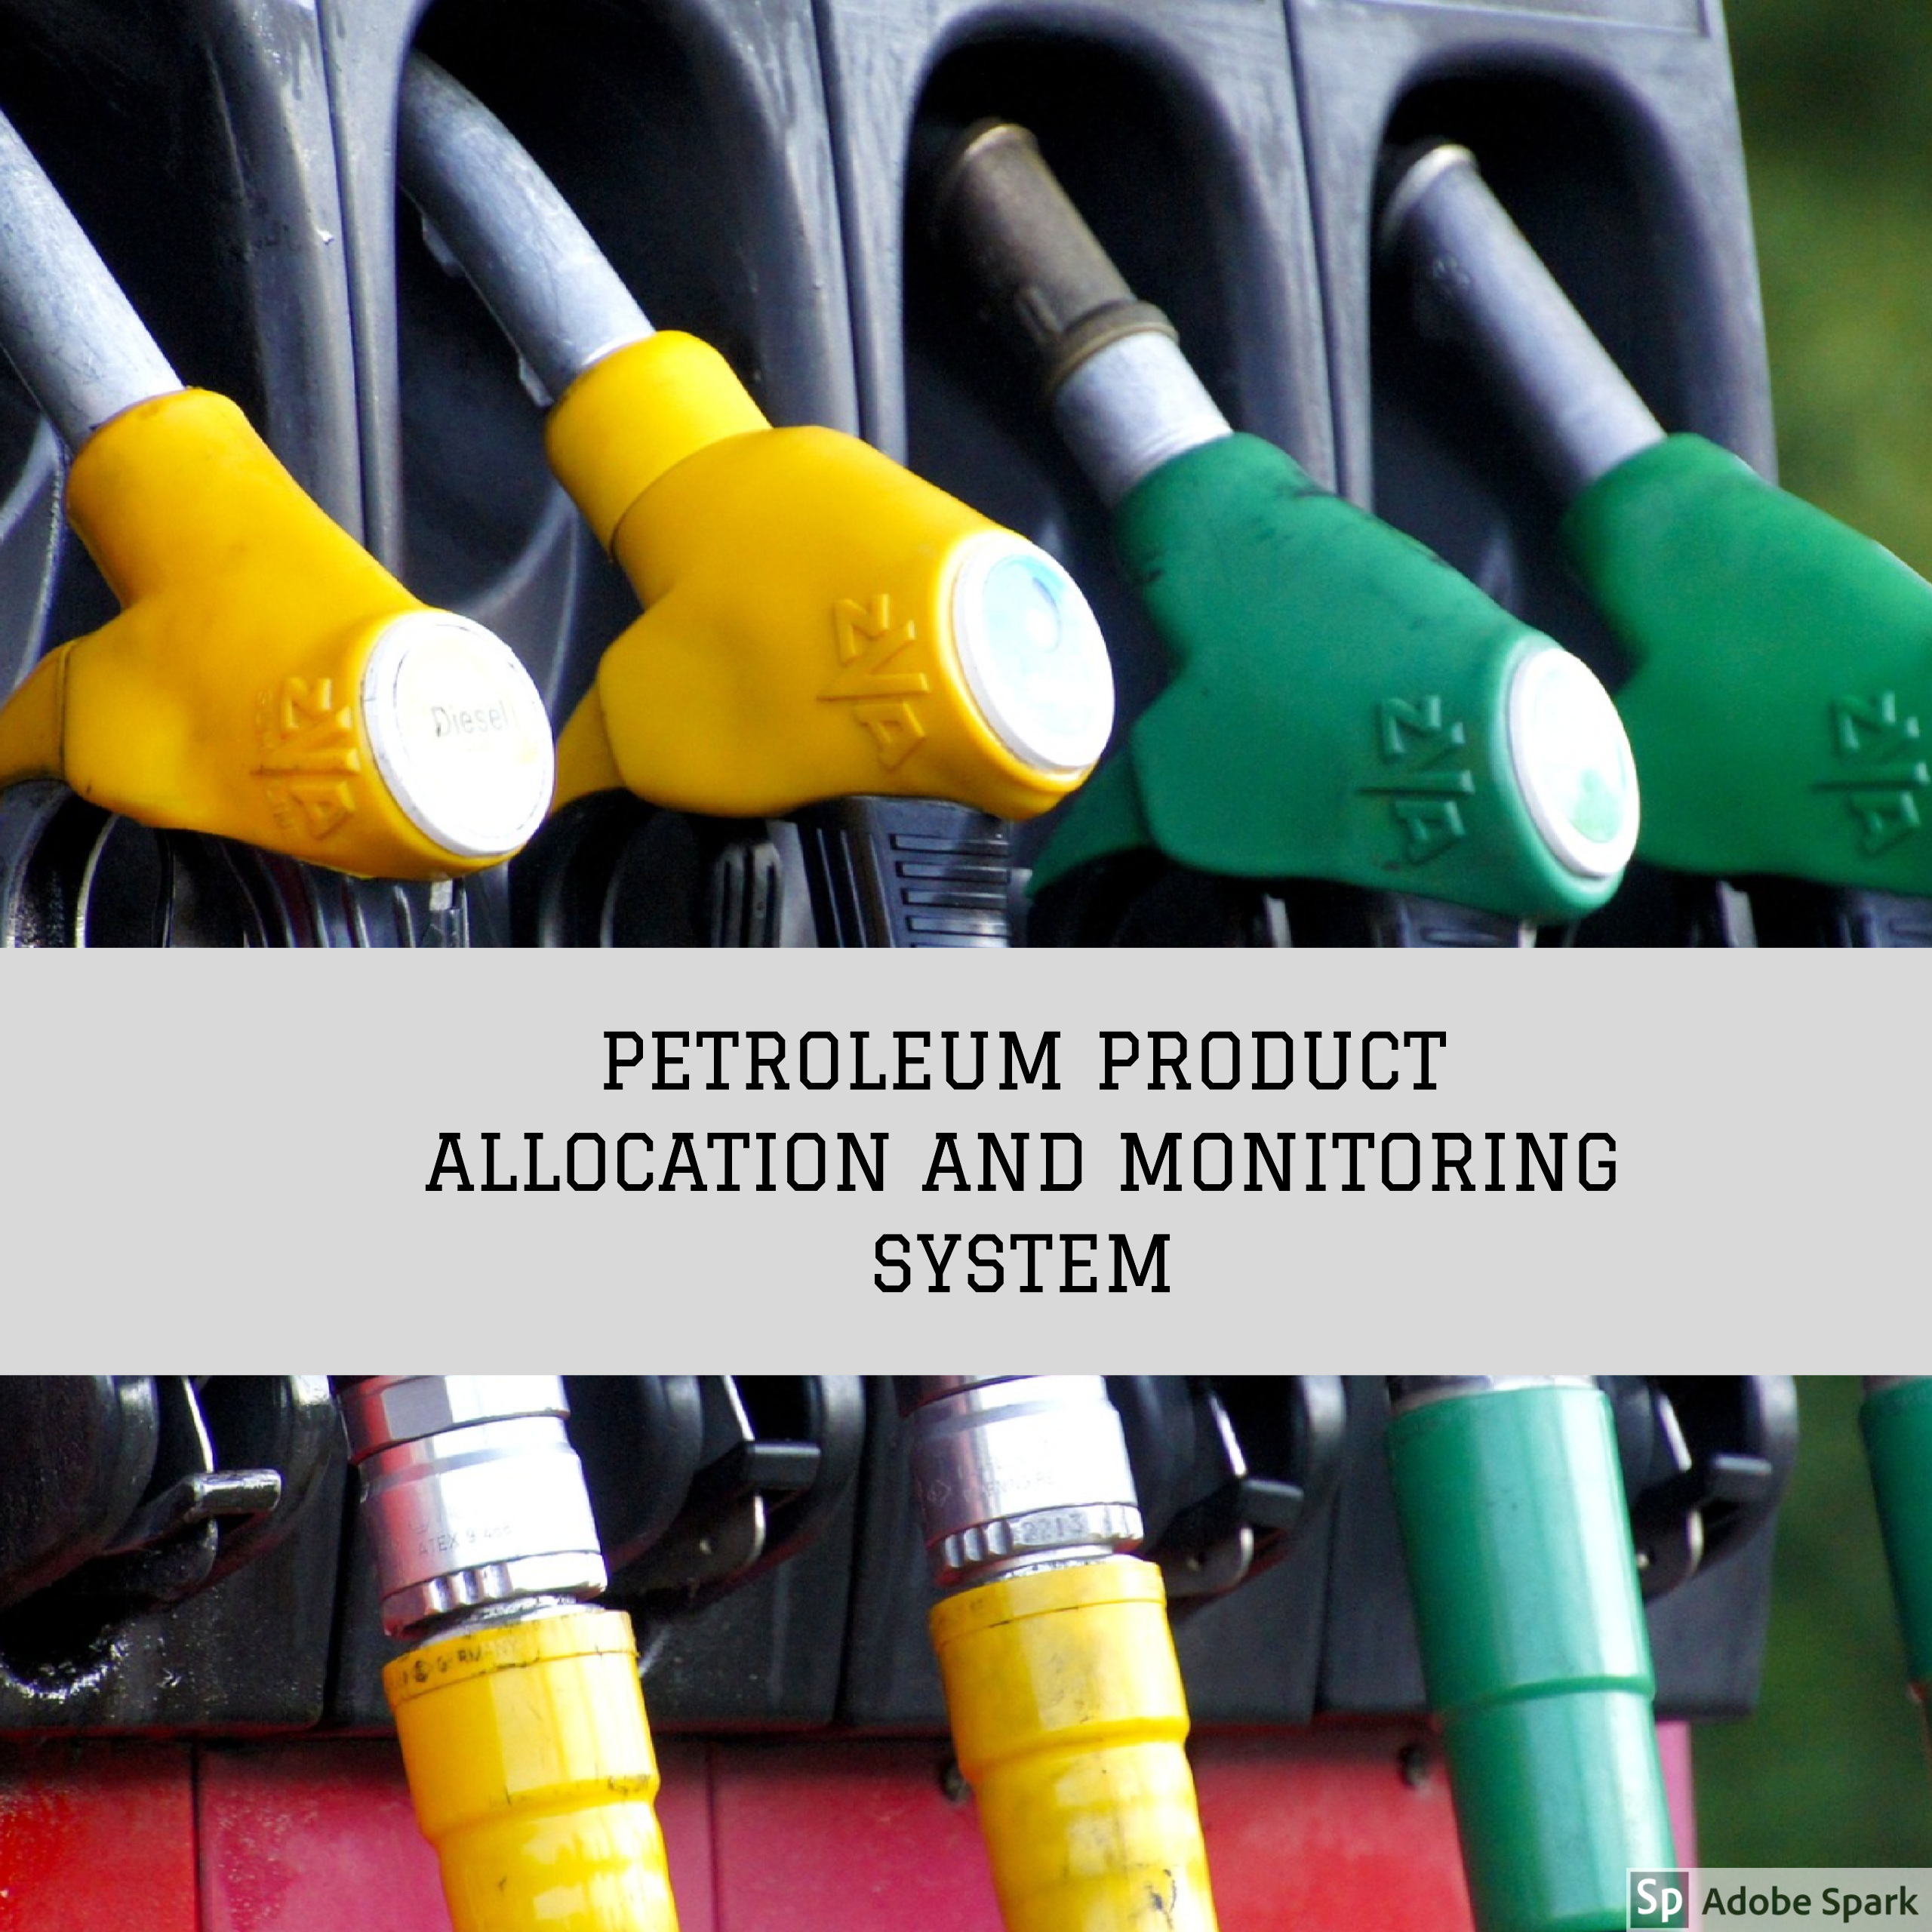 DESIGN AND IMPLEMENTATION PETROLEUM PRODUCT ALLOCATION AND MONITORING SYSTEM